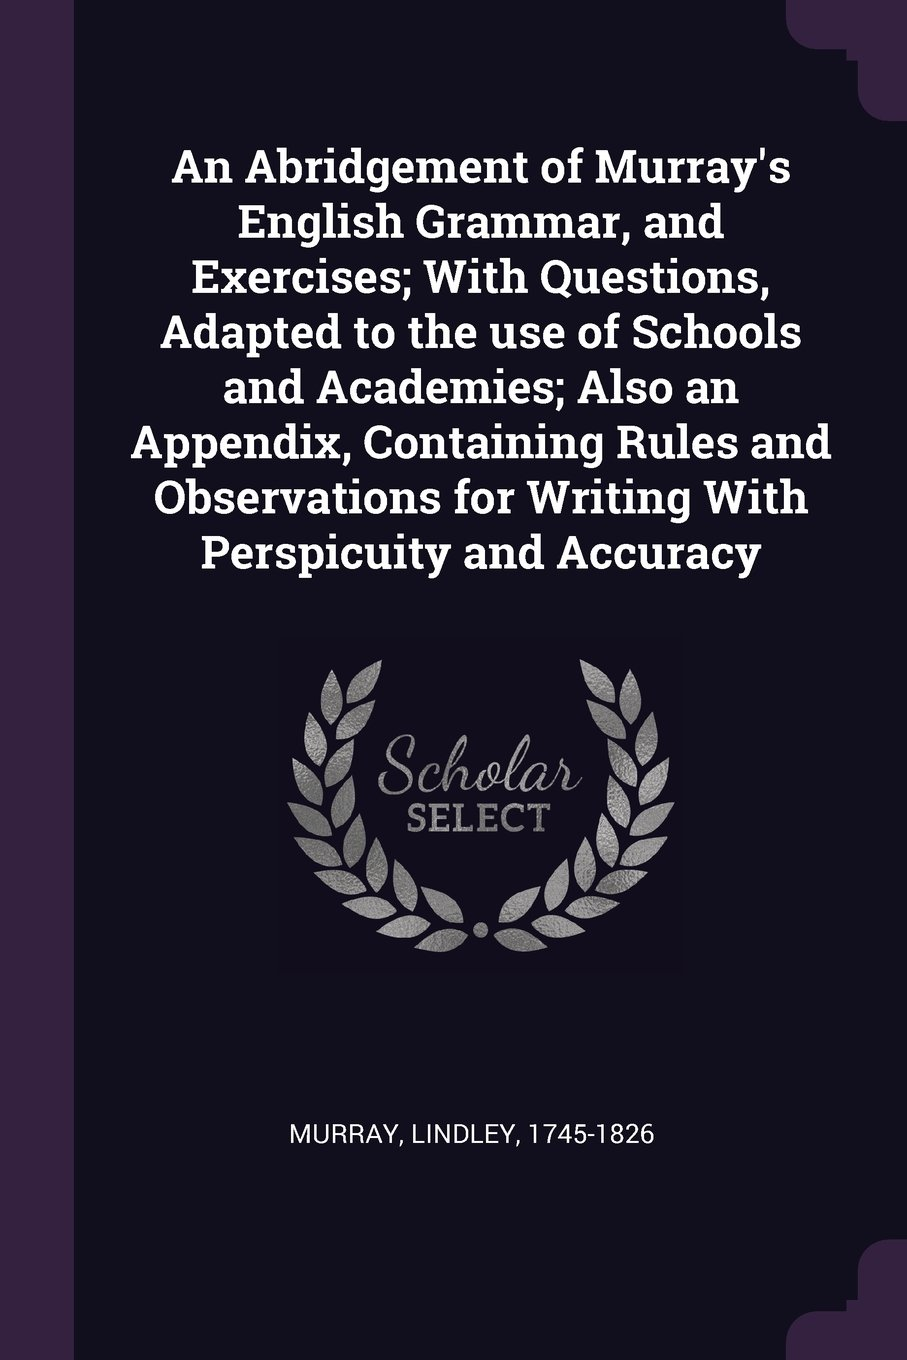 An Abridgement of Murray's English Grammar, and Exercises; With Questions, Adapted to the Use of Schools and Academies; Also an Appendix, Containing ... for Writing with Perspicuity and Accuracy pdf